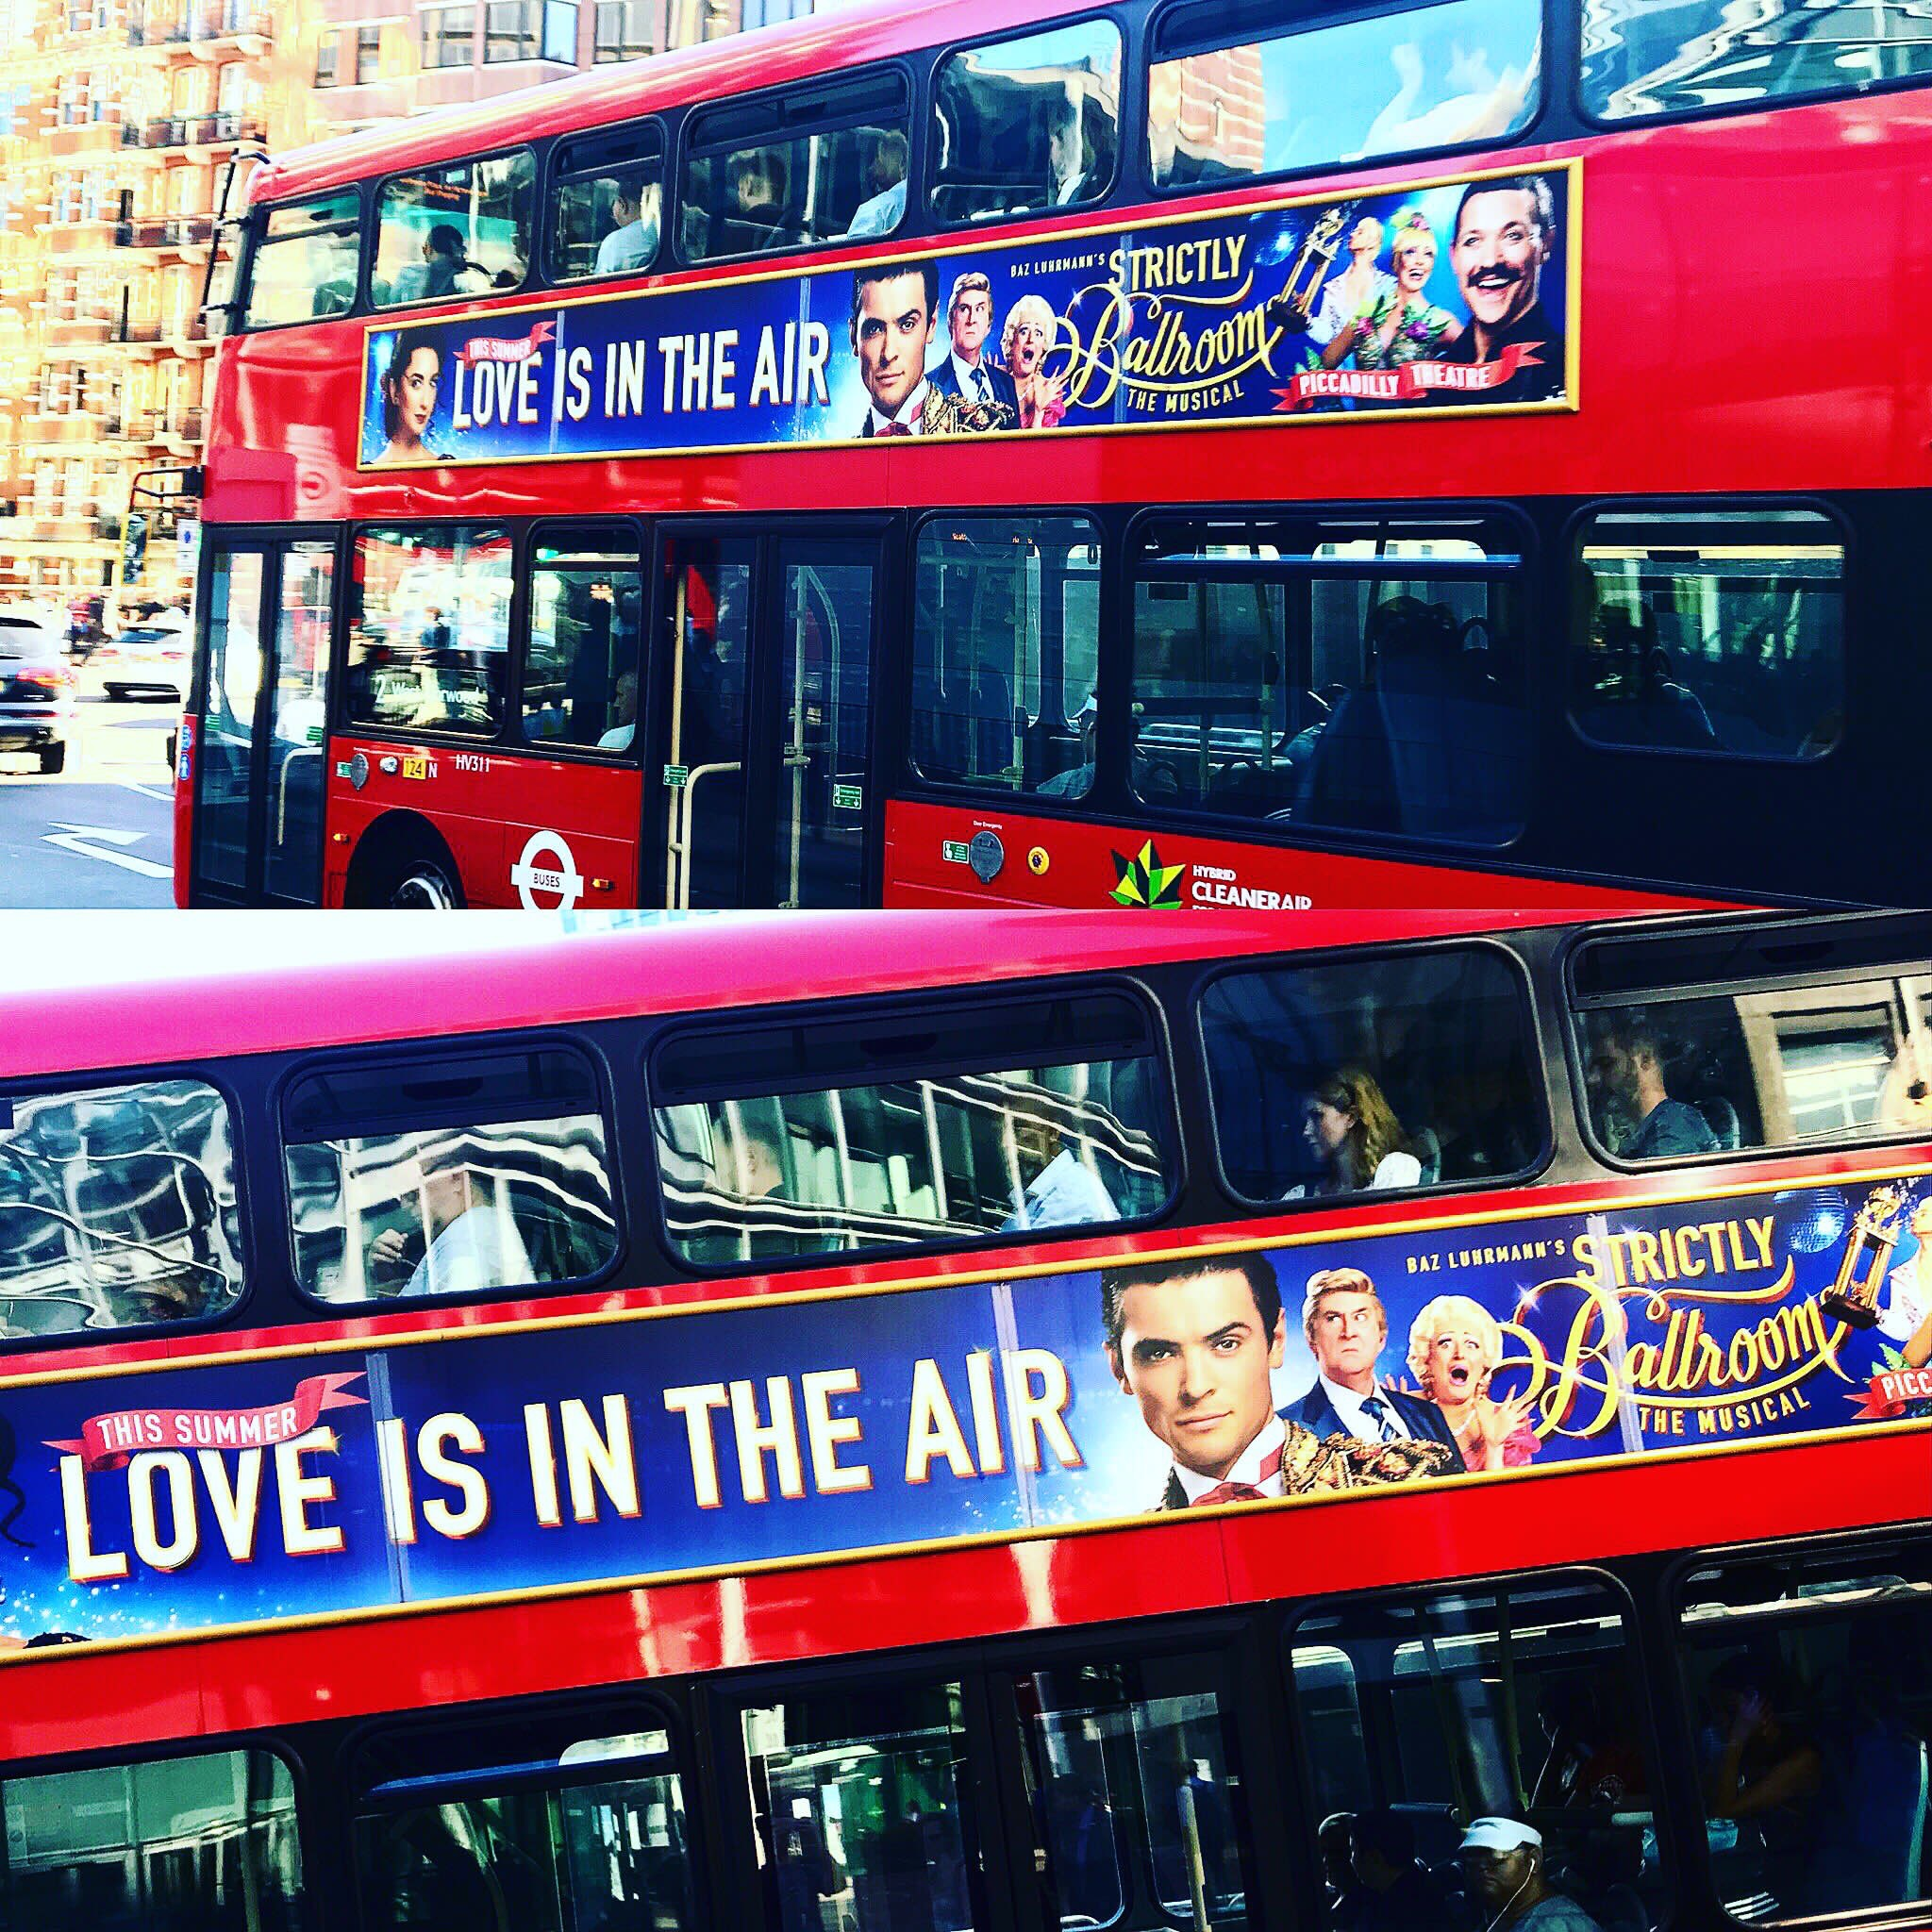 Strictly Ballroom adverts on Londons buses 2018